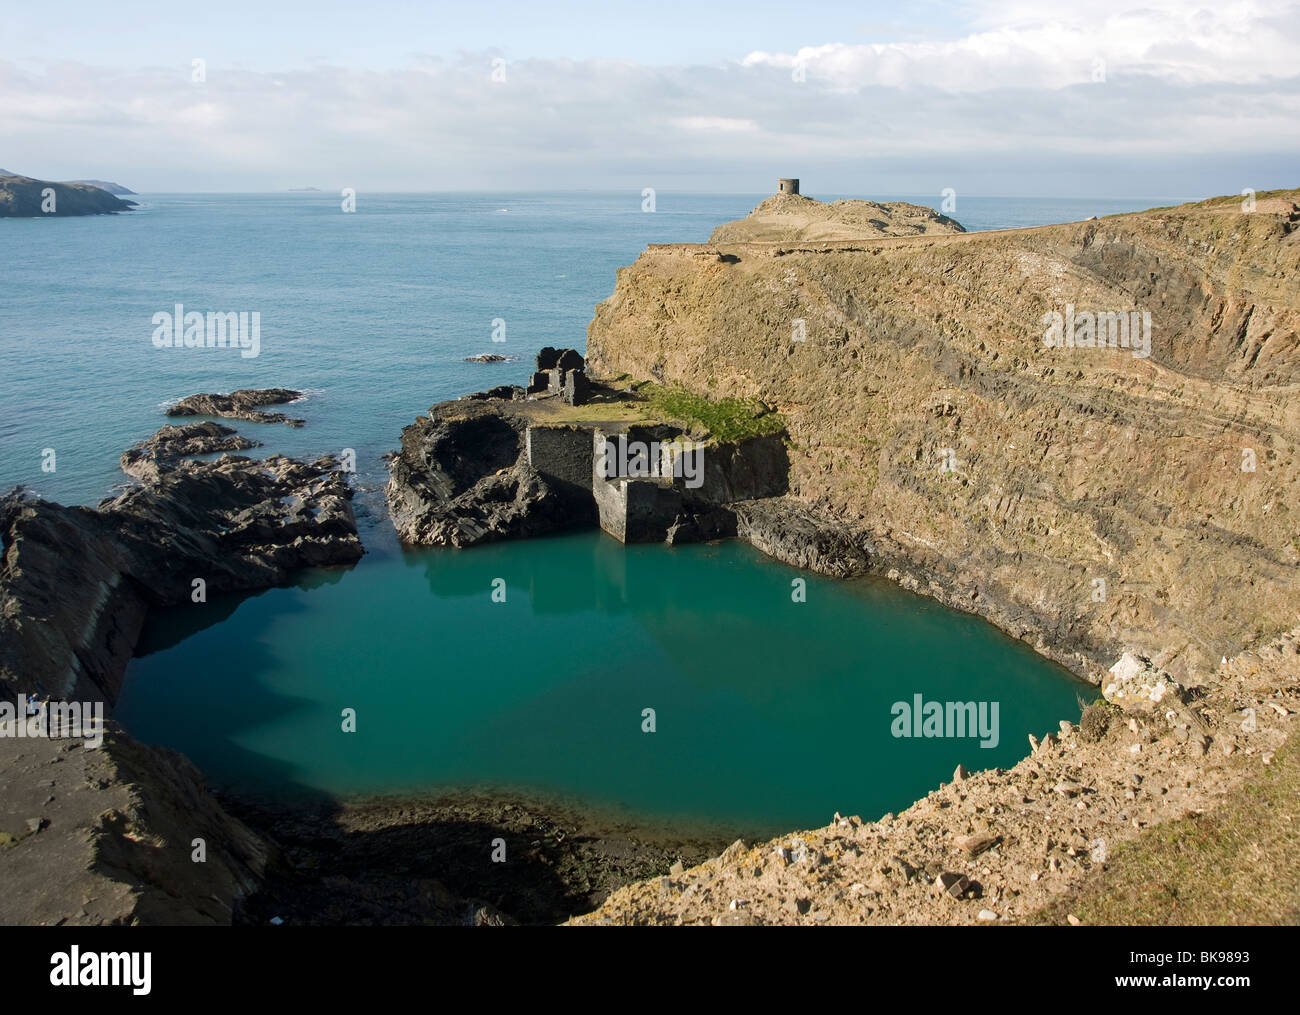 The Blue Lagoon at Abereiddy in Pembrokeshire West Wales - Stock Image